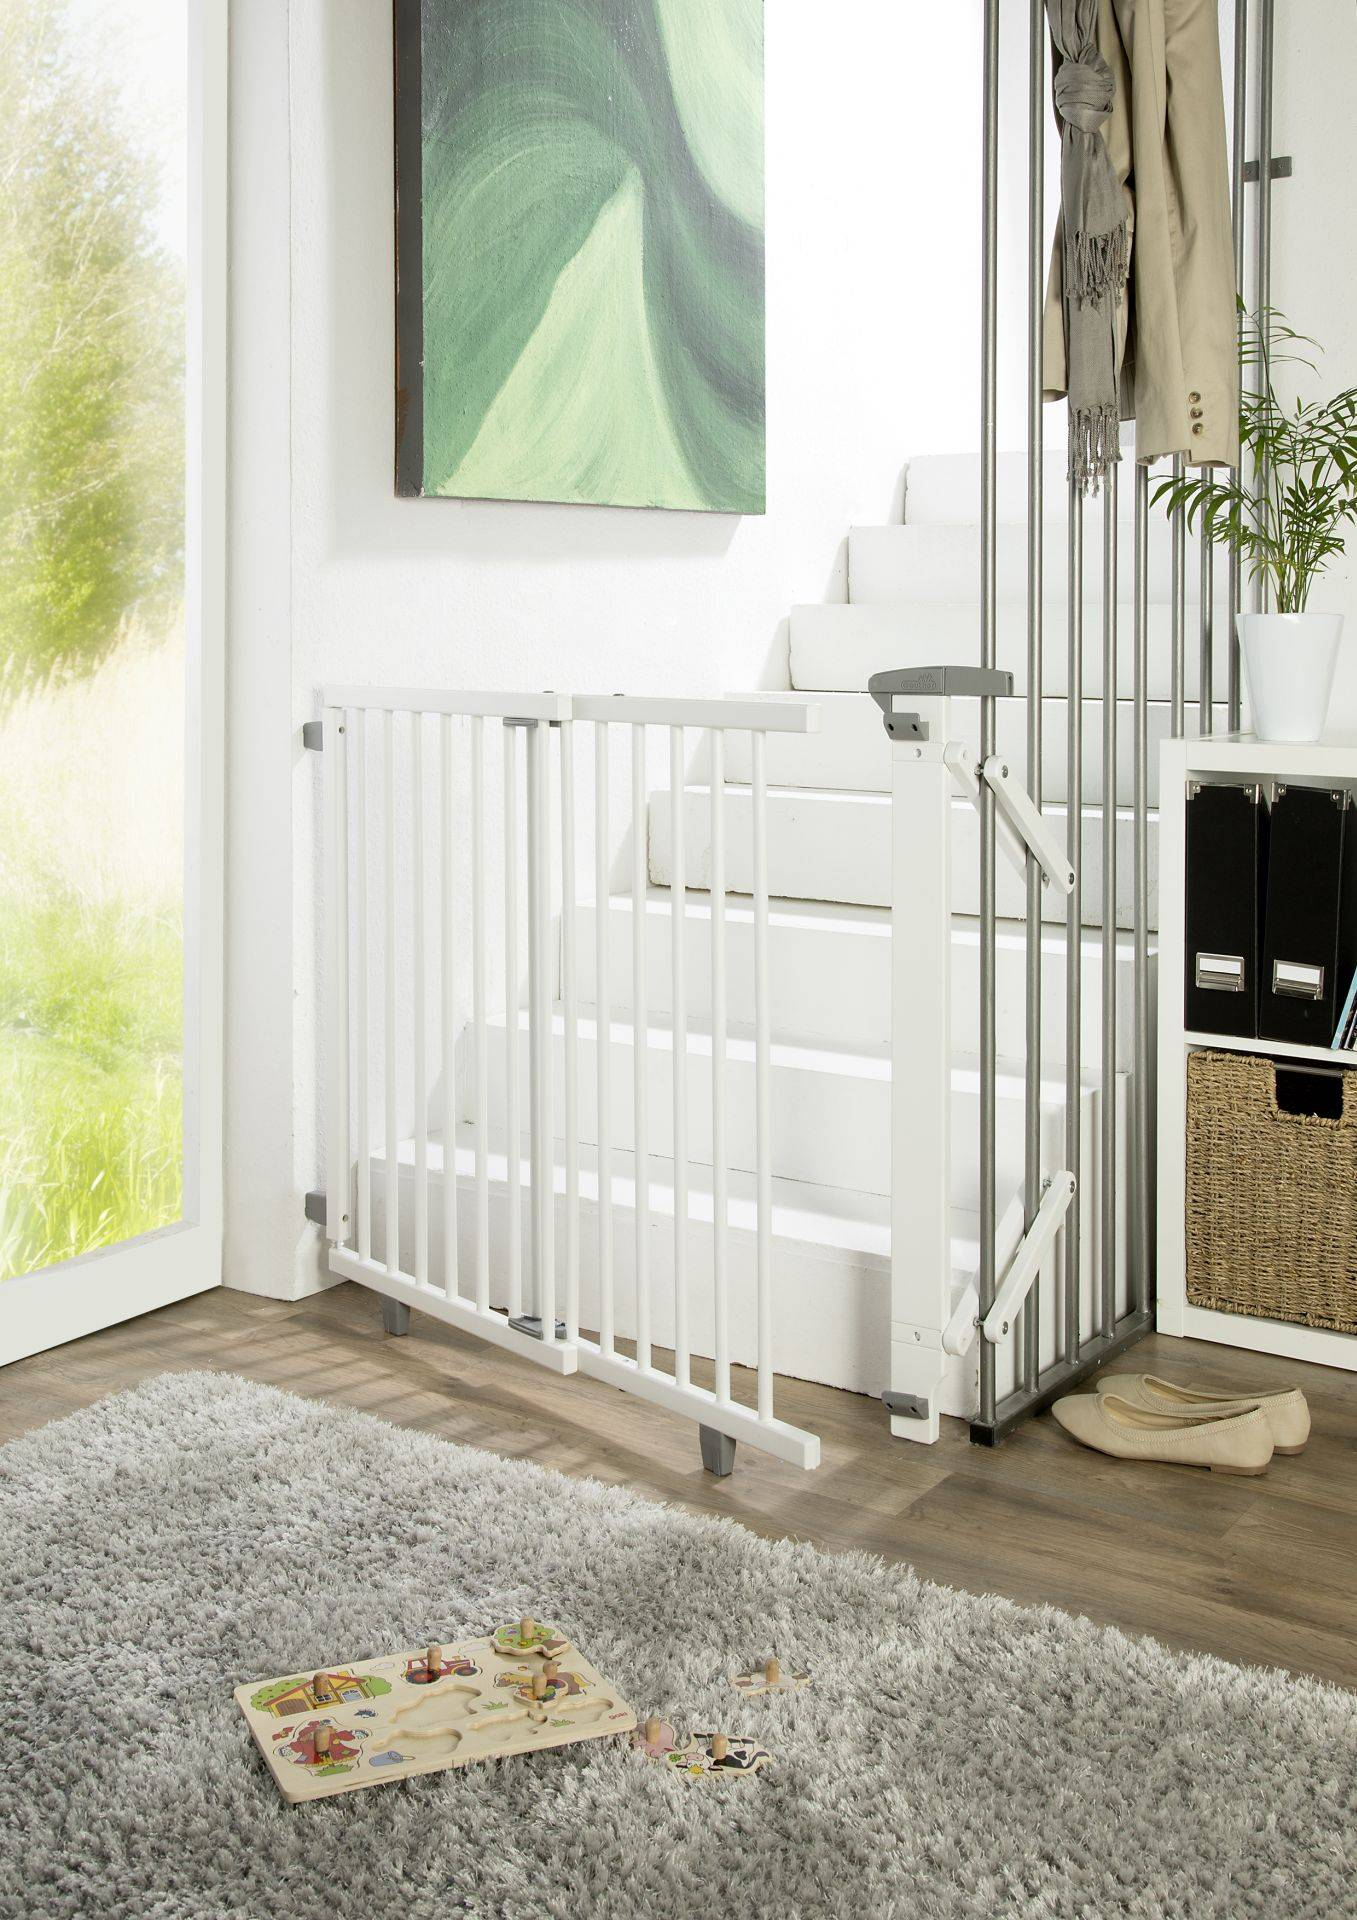 Geuther Swivel stair gate made from wood; Weiß